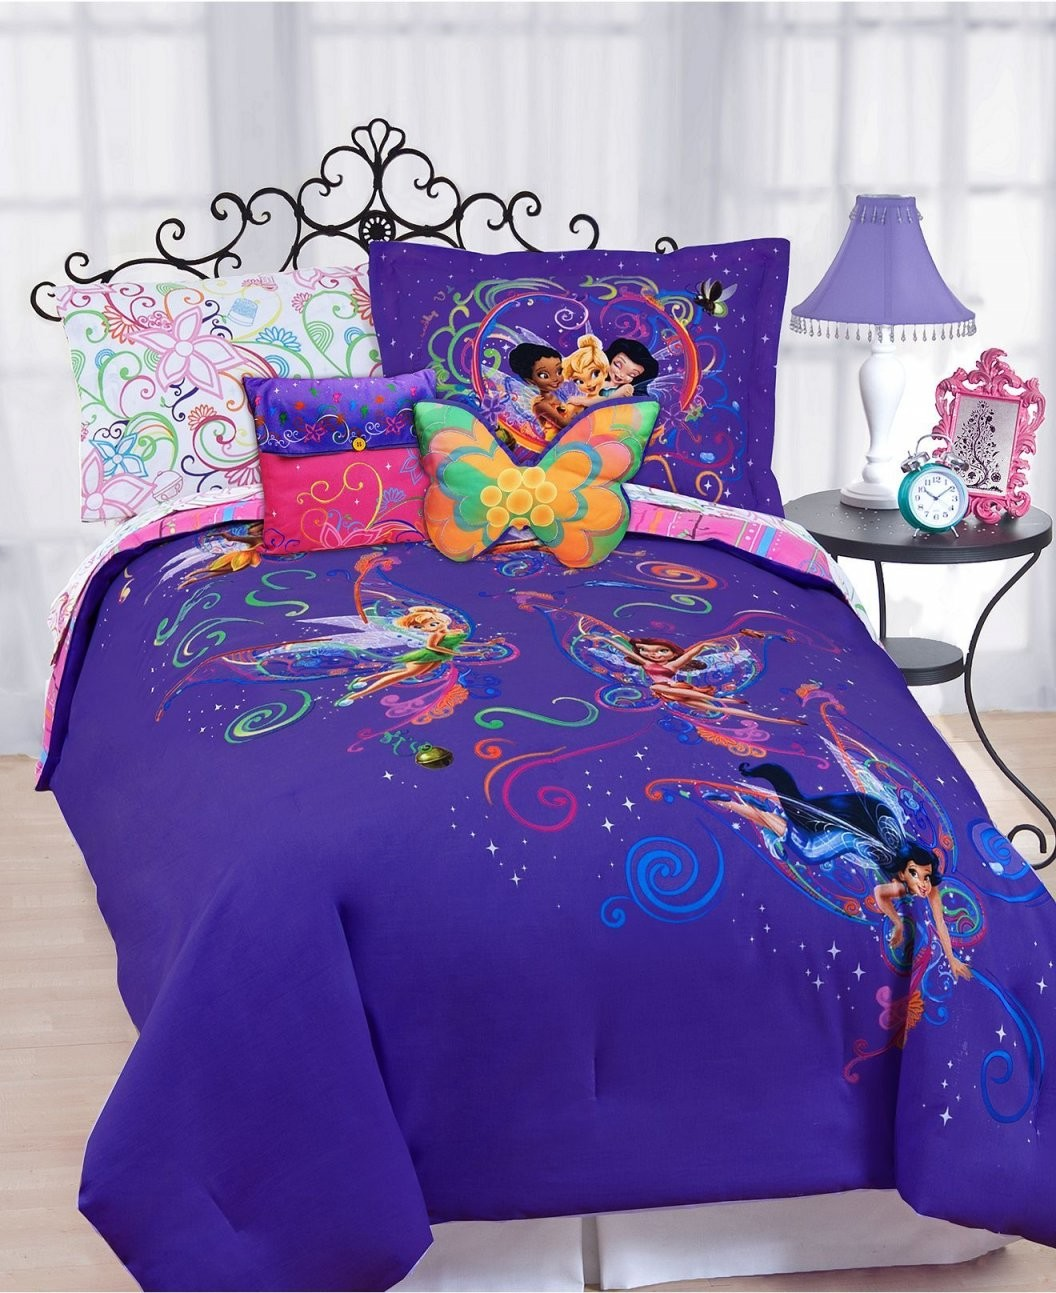 Disney Bedding Surreal Garden Disney Tinkerbell Comforter Sets von Tinker Bell Bed Sets Bild